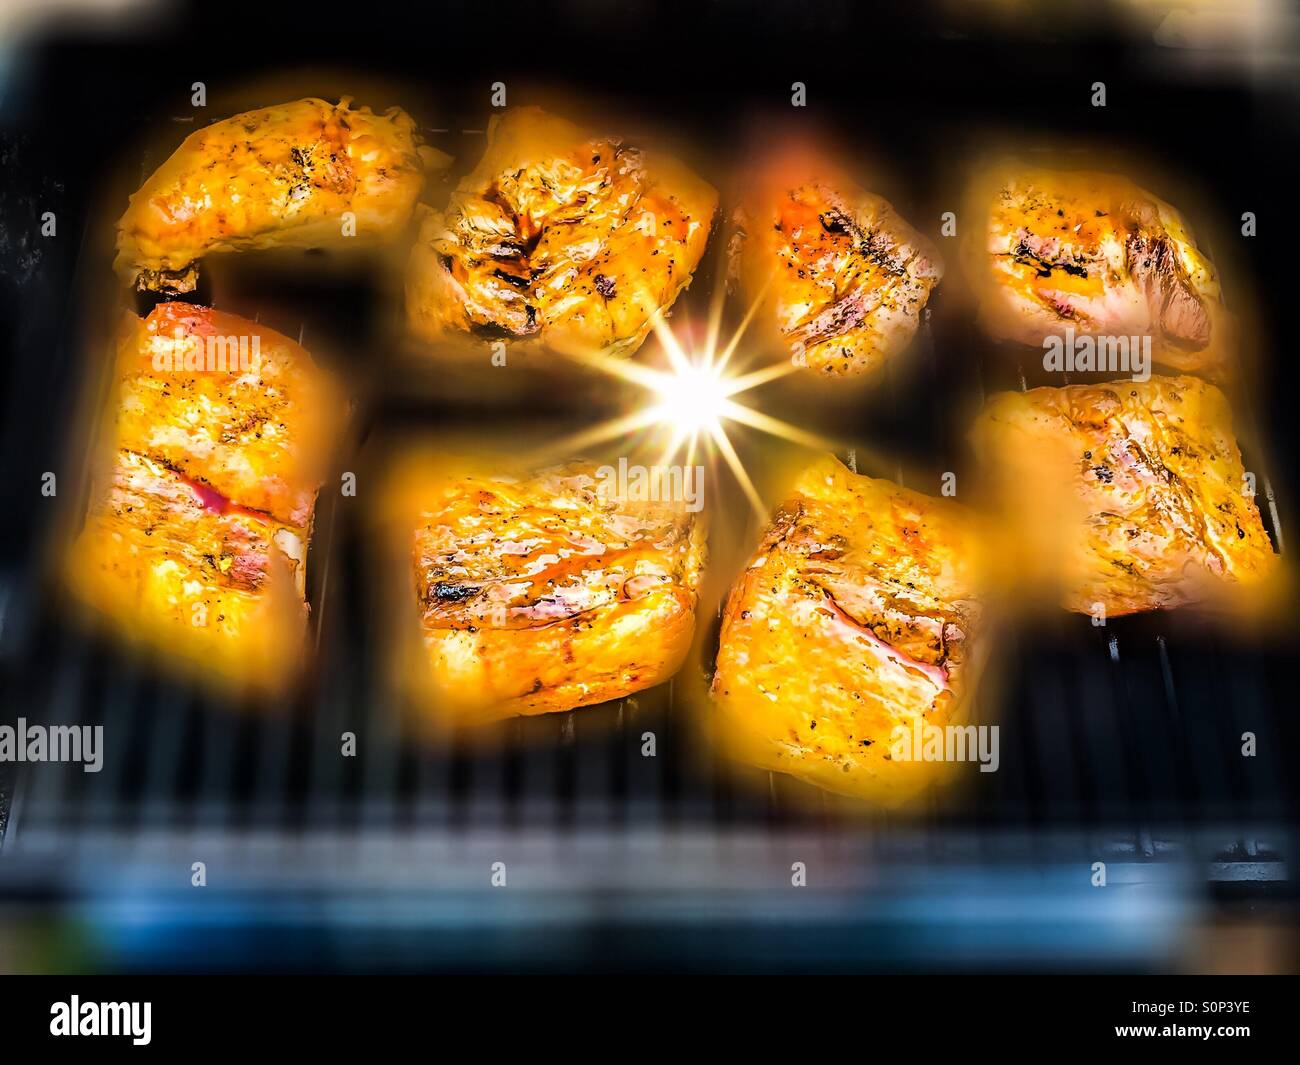 Barbecue spark - Stock Image